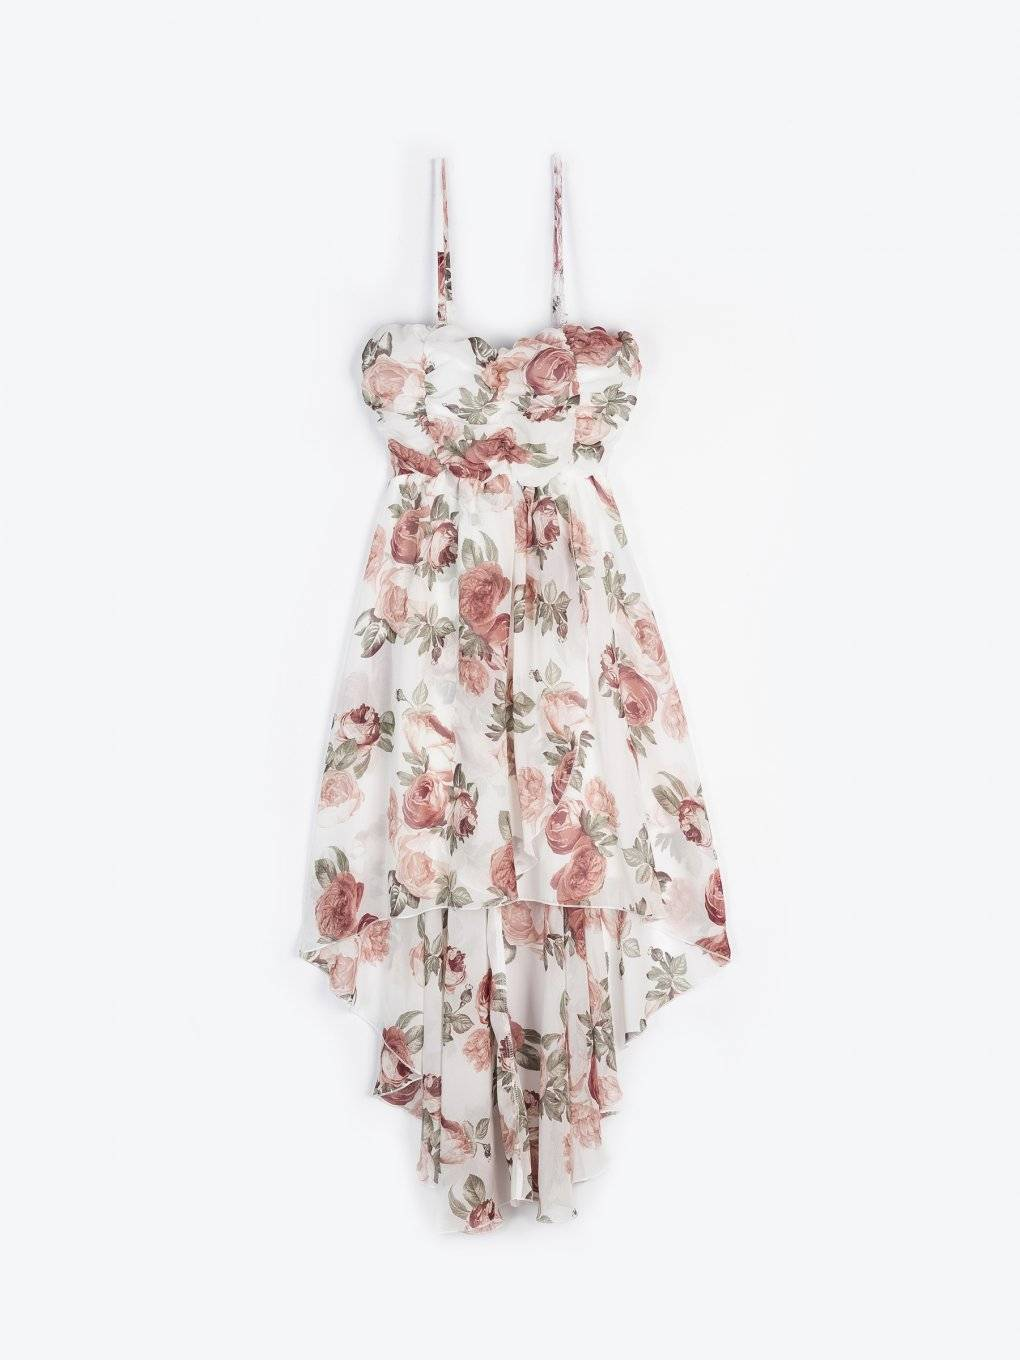 Asymmetric floral dress with removable straps